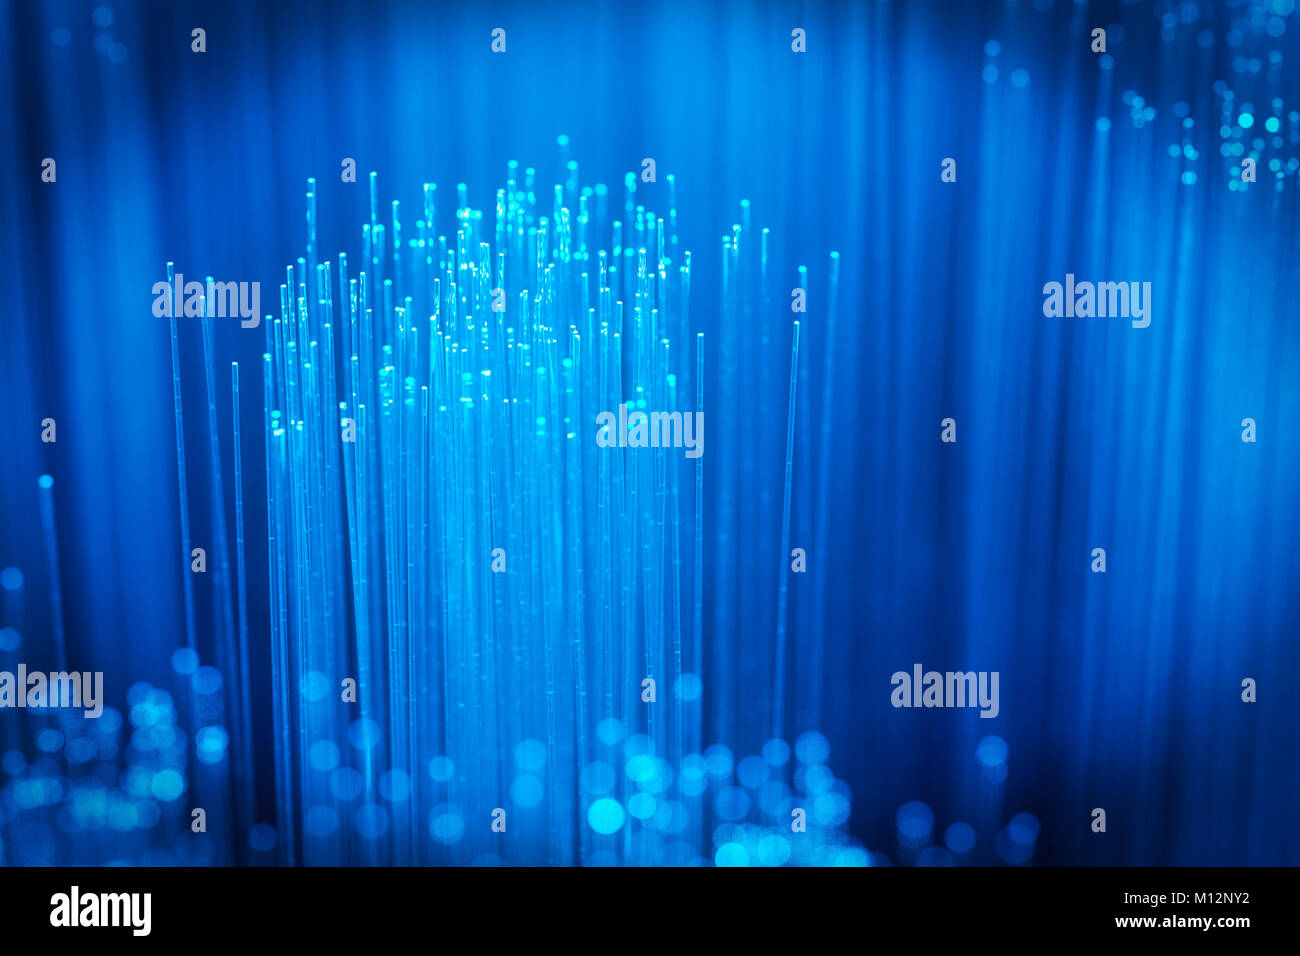 3d rendering of fiber optics against blue light background - Stock Image